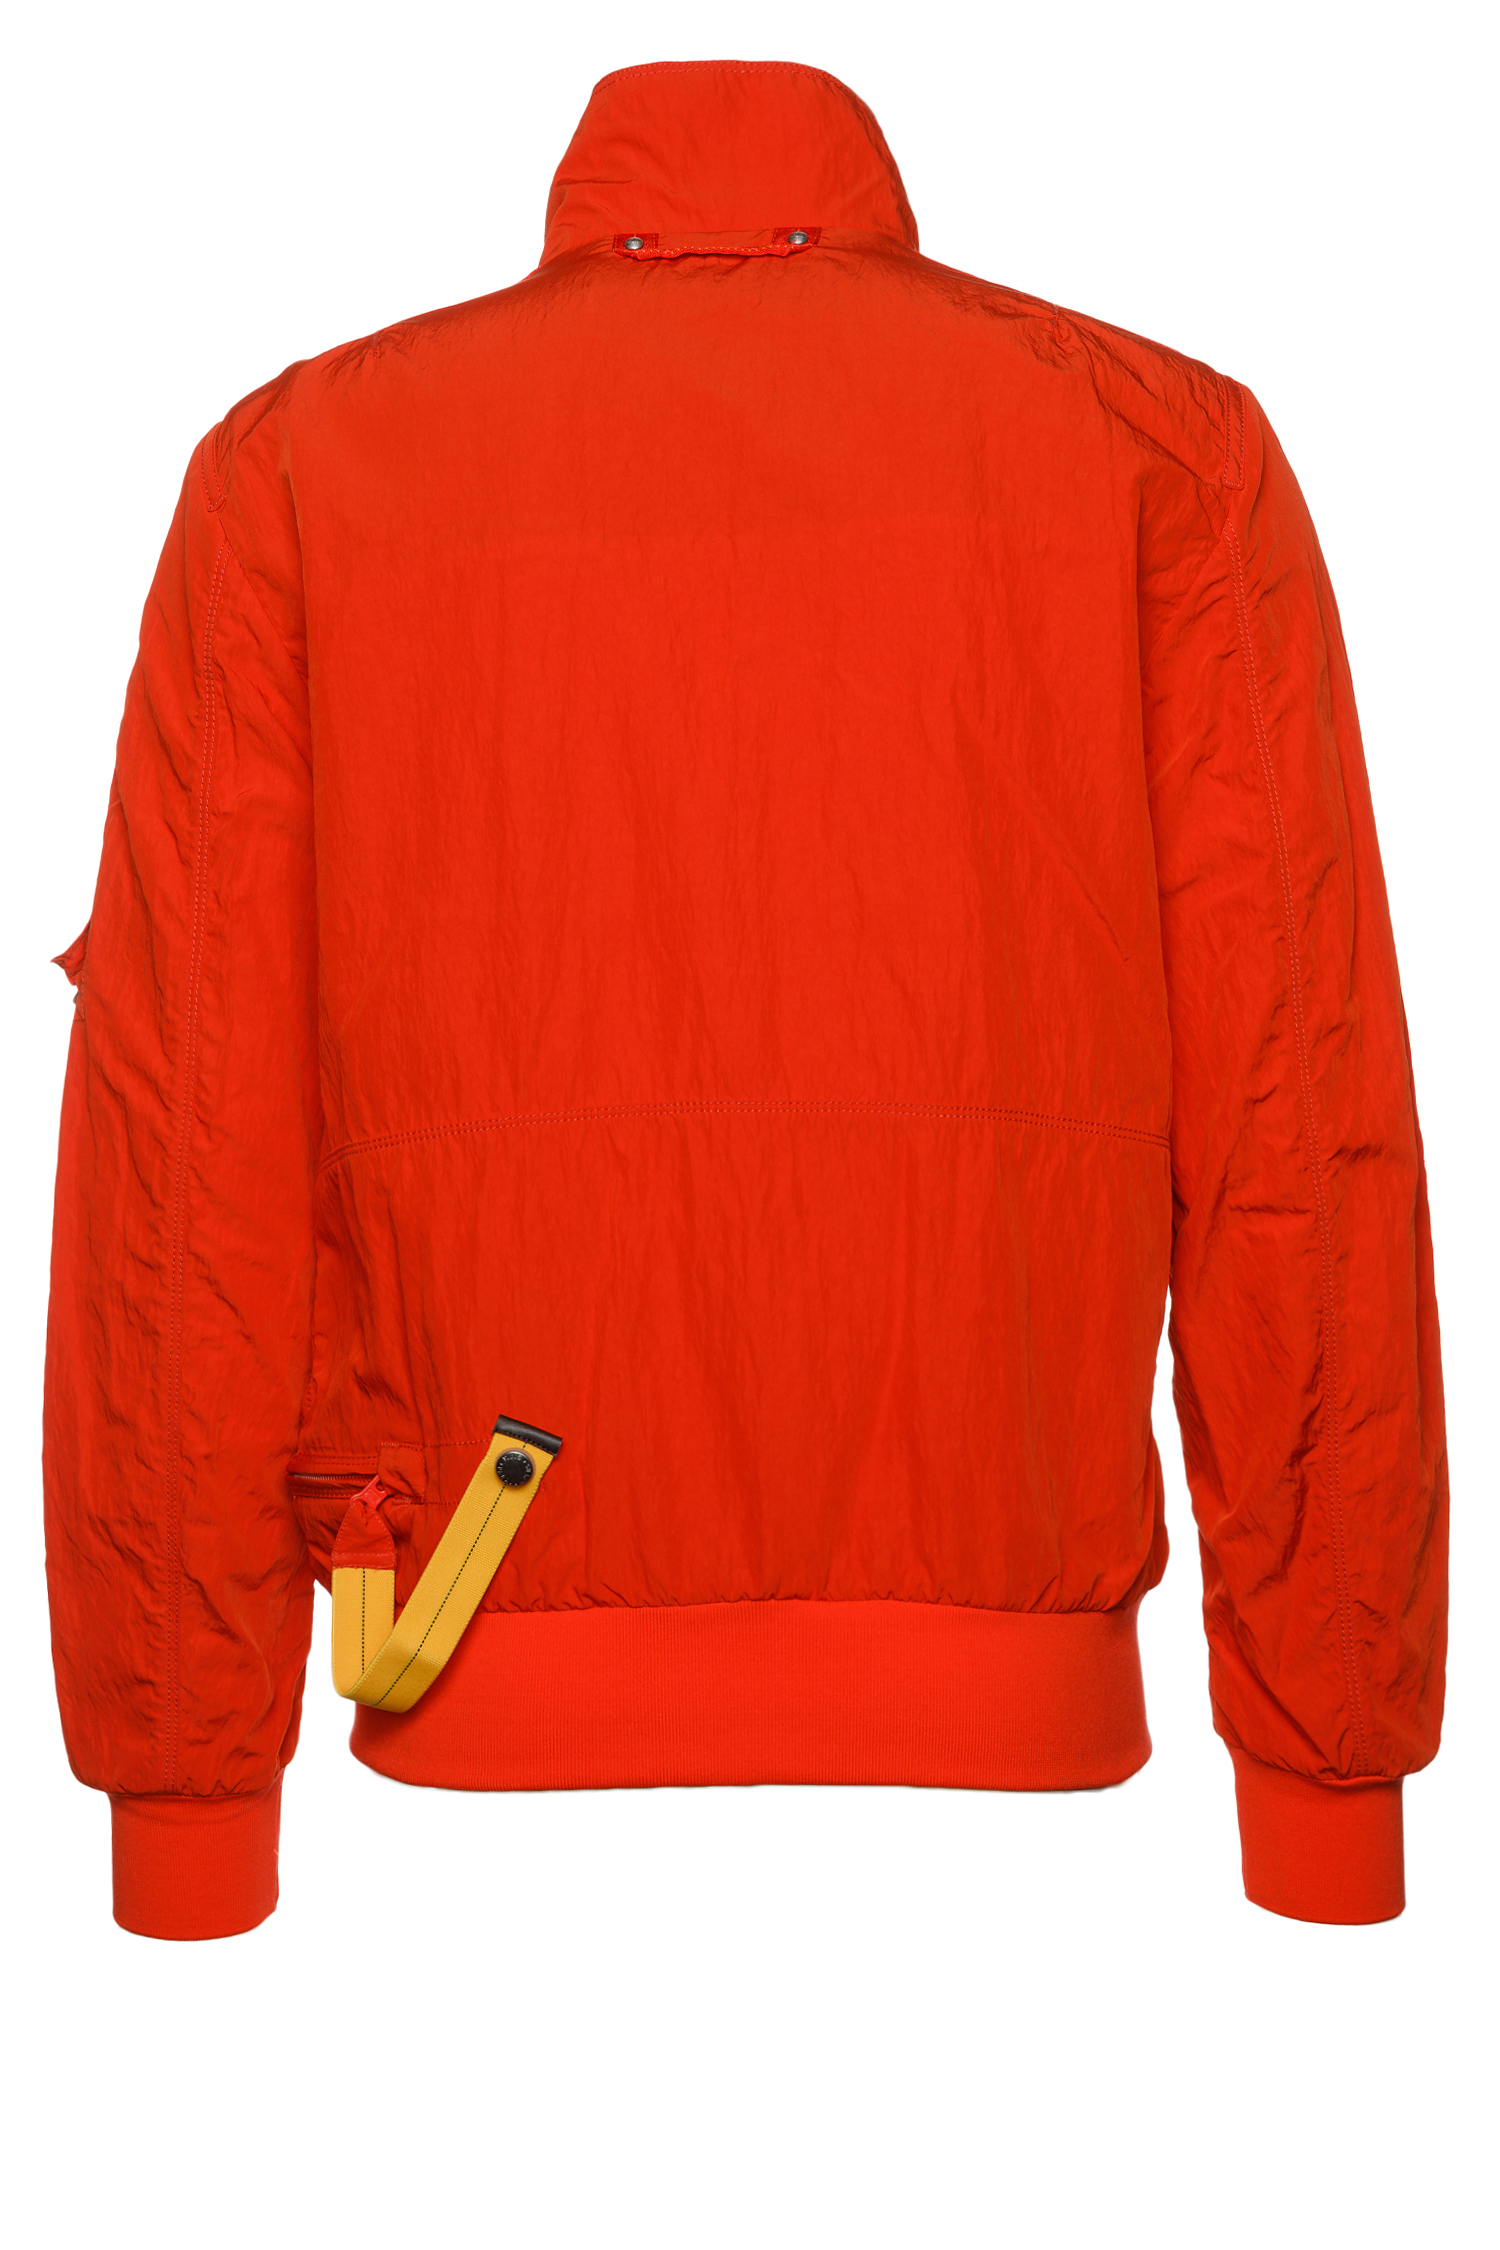 Parajumpers-Jacke-Fire-Spring-Man miniature 3